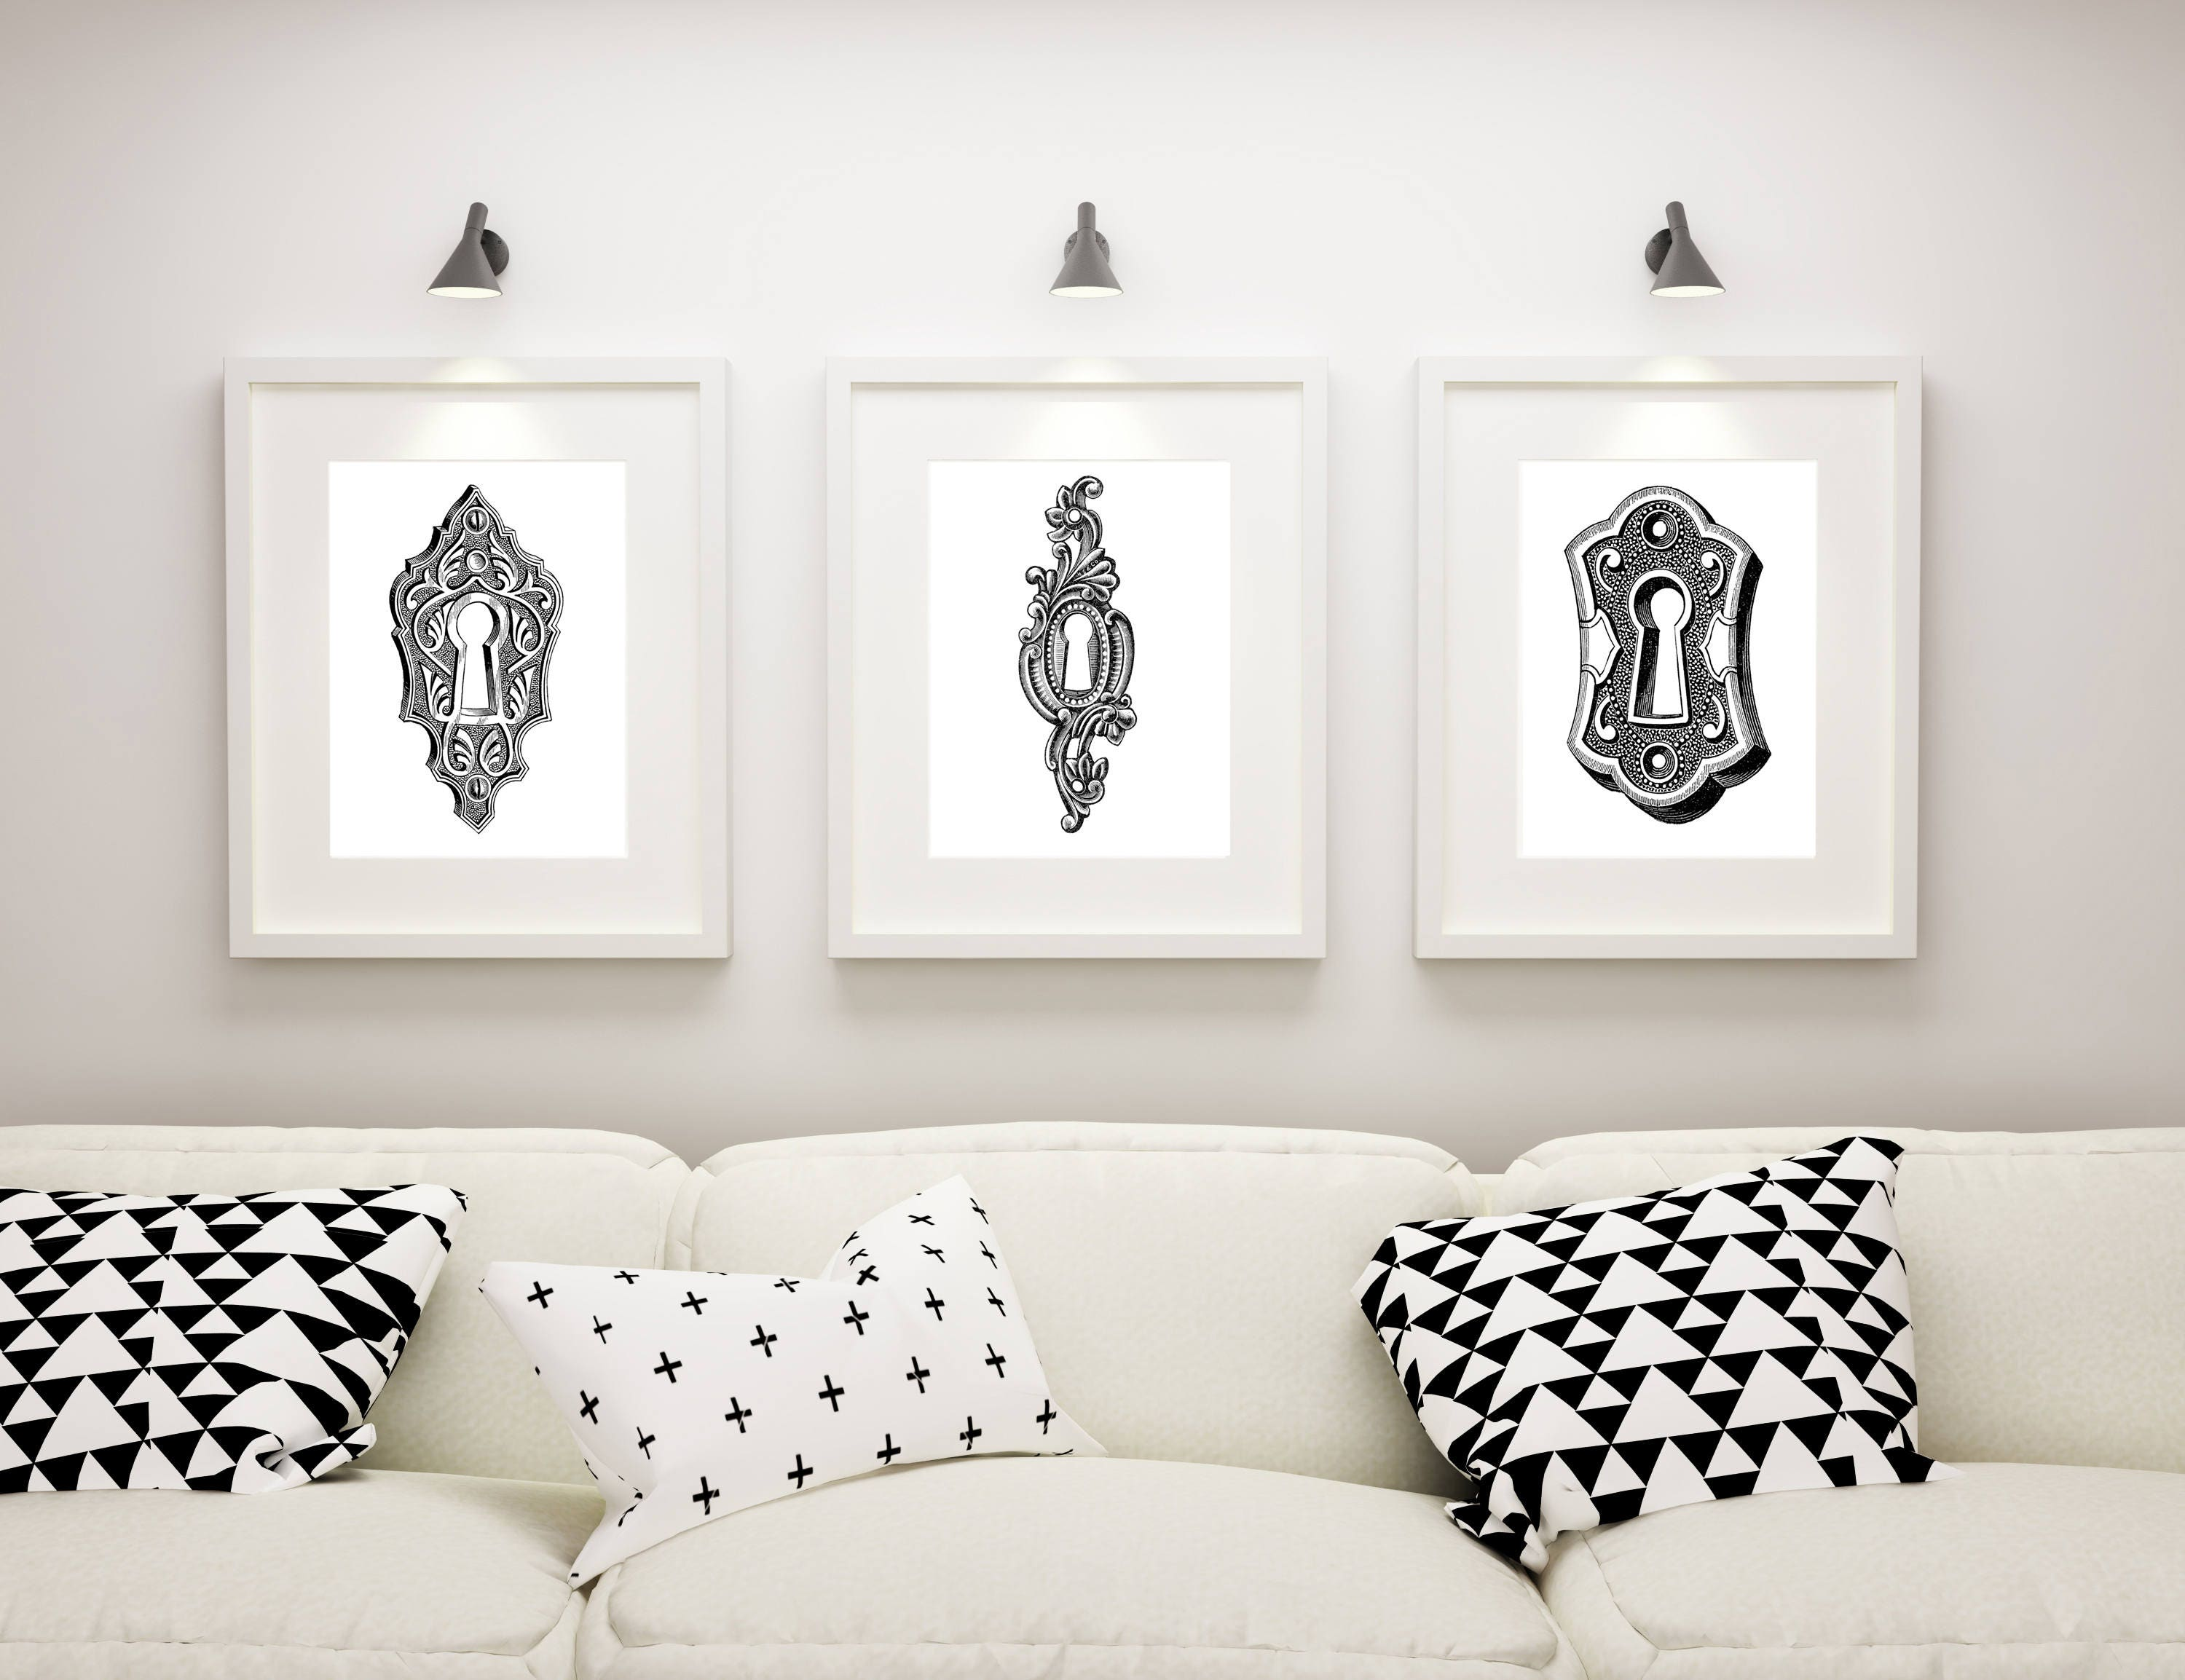 Living Room Wall Art, Master Bedroom Decor, Steampunk Artwork, Bathroom  Wall Art, Home Decor, Keyhole Print Set, Escutcheon Art